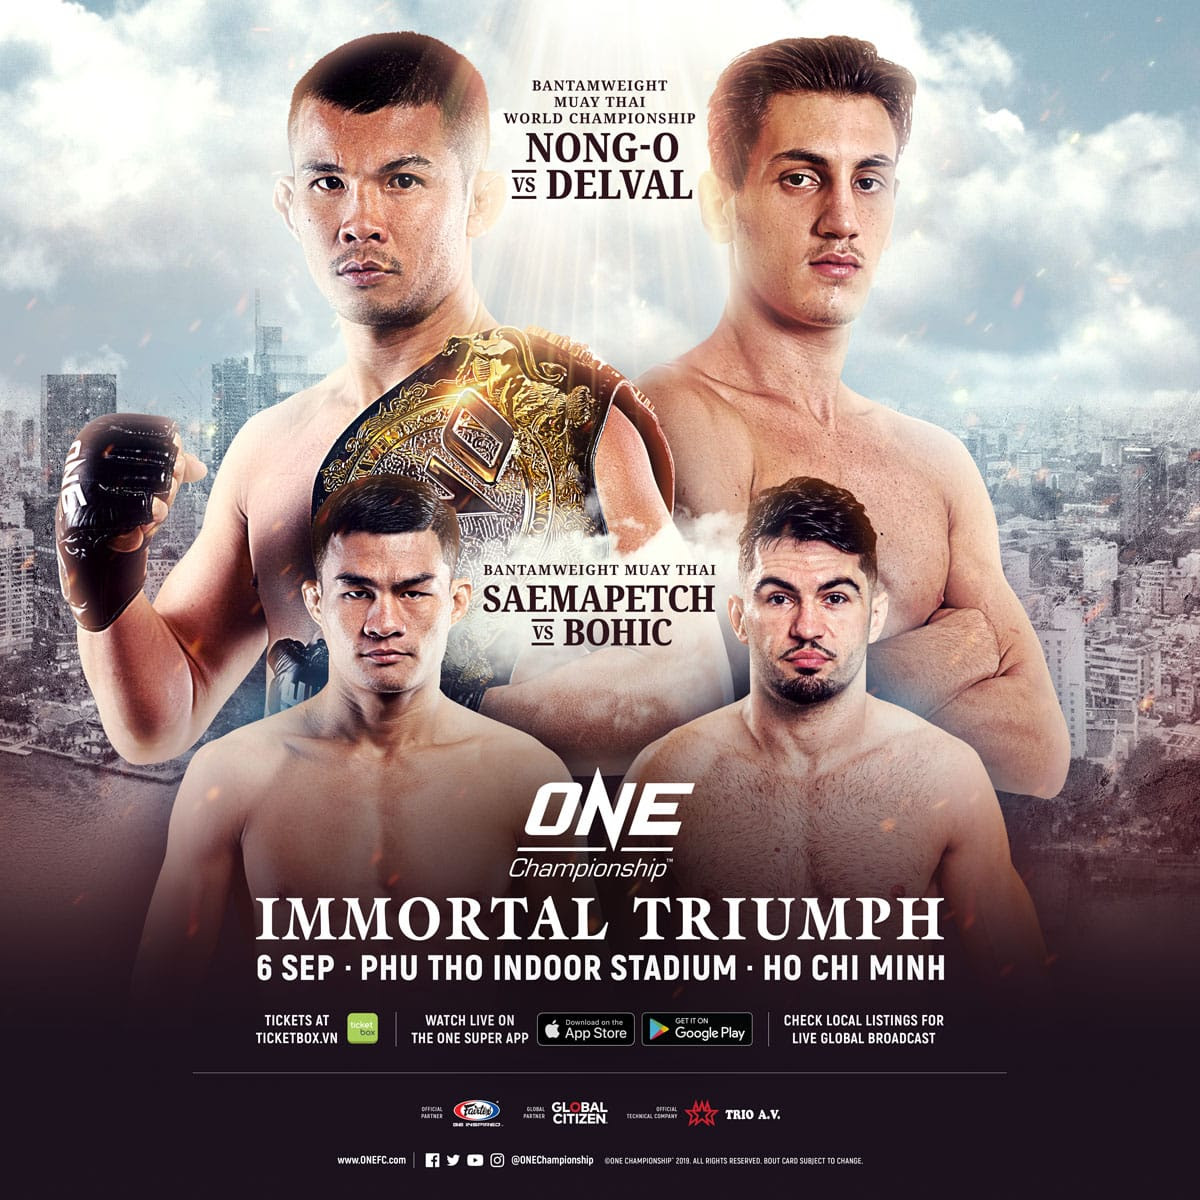 COMPLETE CARD ANNOUNCED FOR ONE: IMMORTAL TRIUMPH IN HO CHI MINH ON 6 SEPTEMBER -